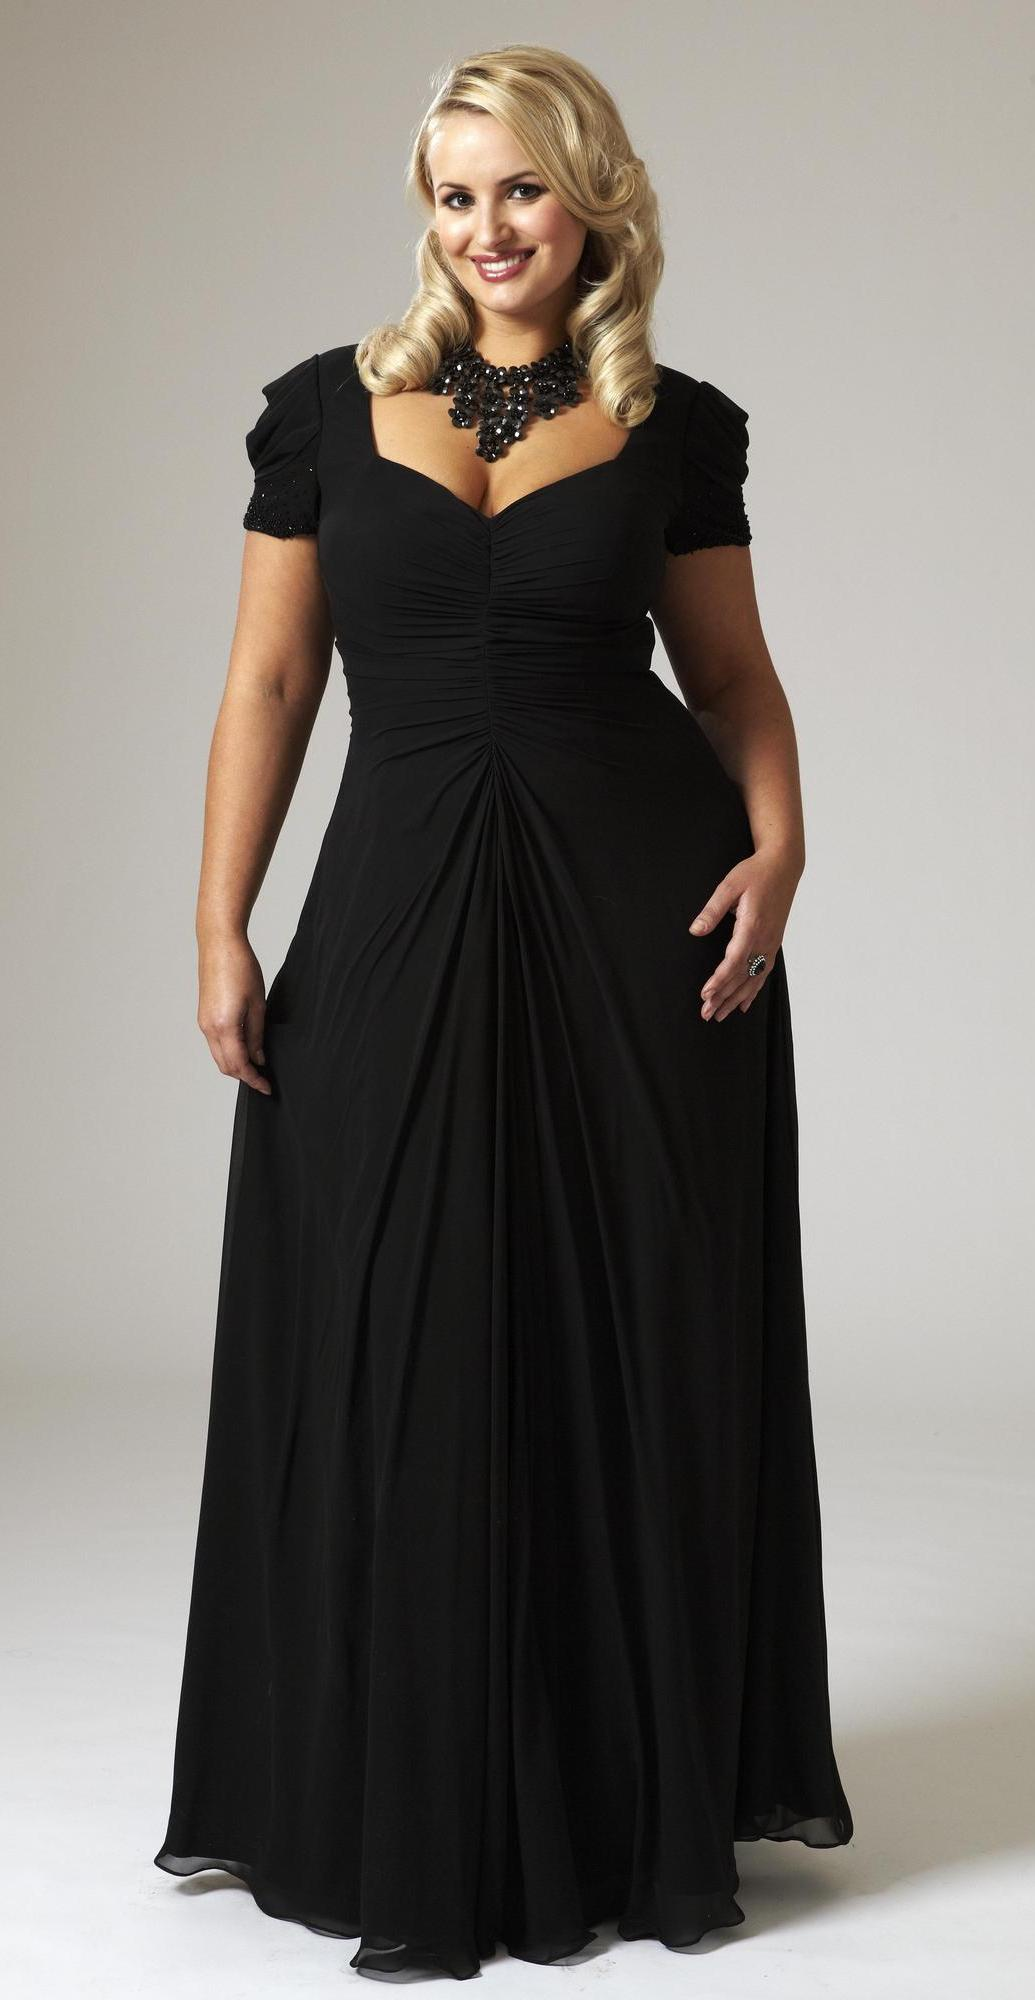 plus-size-cocktail-dresses-92